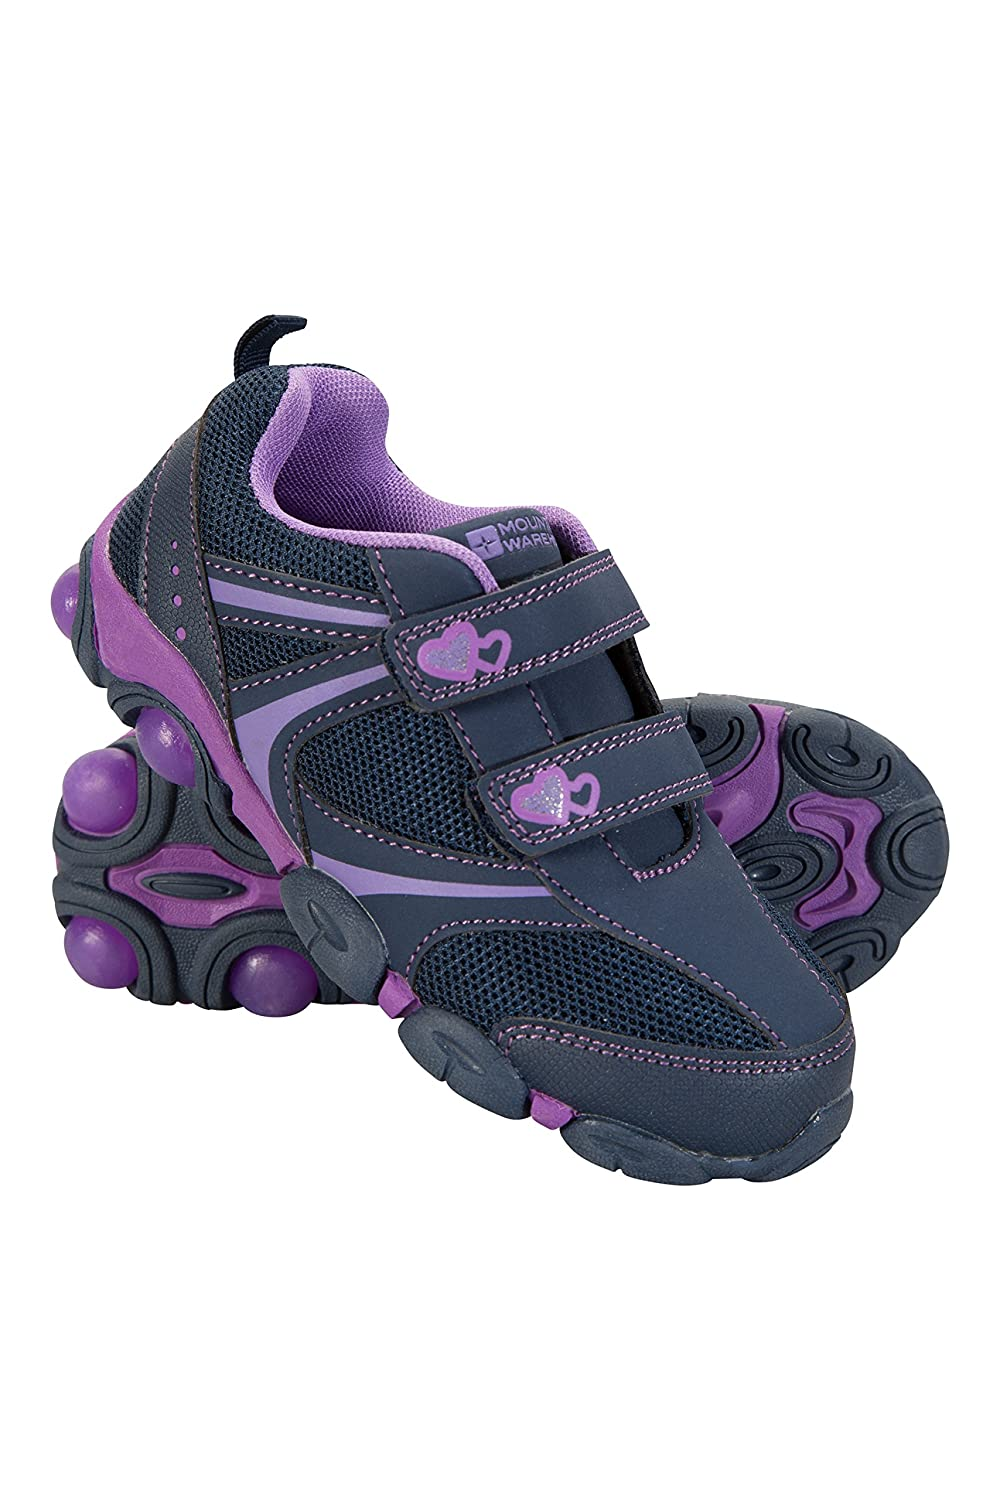 Mountain Warehouse Light Up Junior Shoes - Durable Shoes, Lightweight Footwear, Breathable Kids Shoes, Hook & Loop Fitting- for Walking, Travelling This Summer Navy 6 Child UK